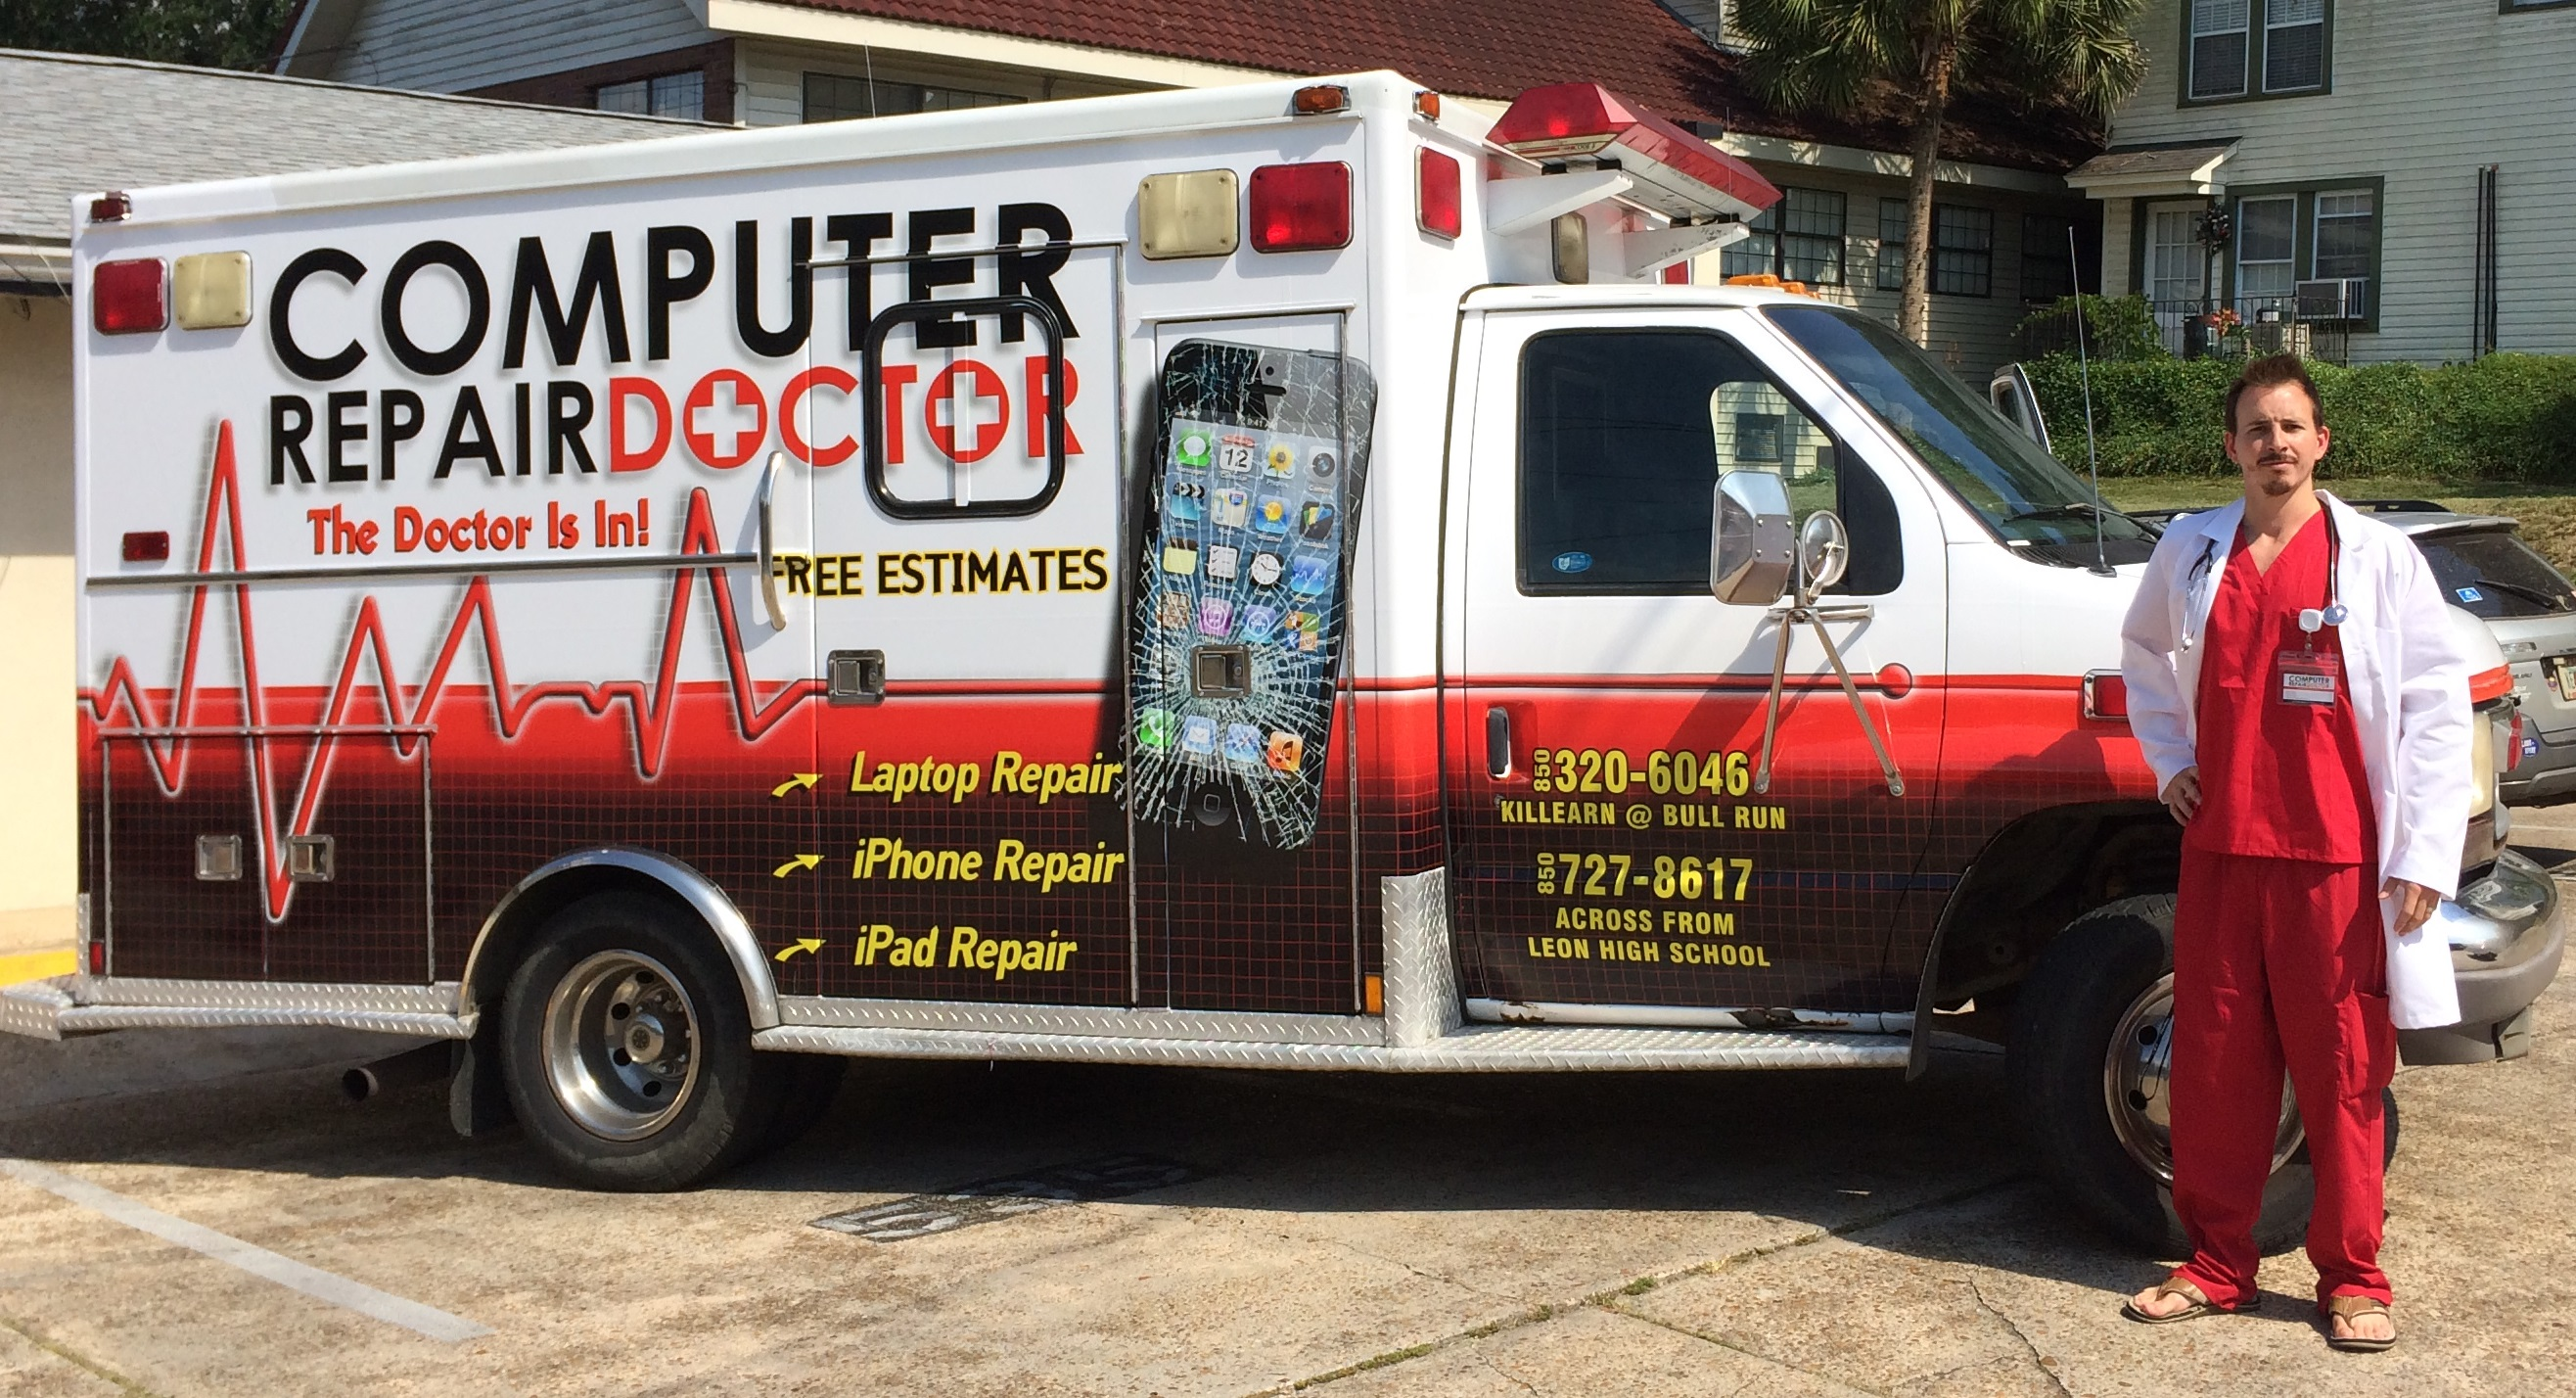 iphone repair tallahassee fl computer repair doctor in la 318 805 5 15400